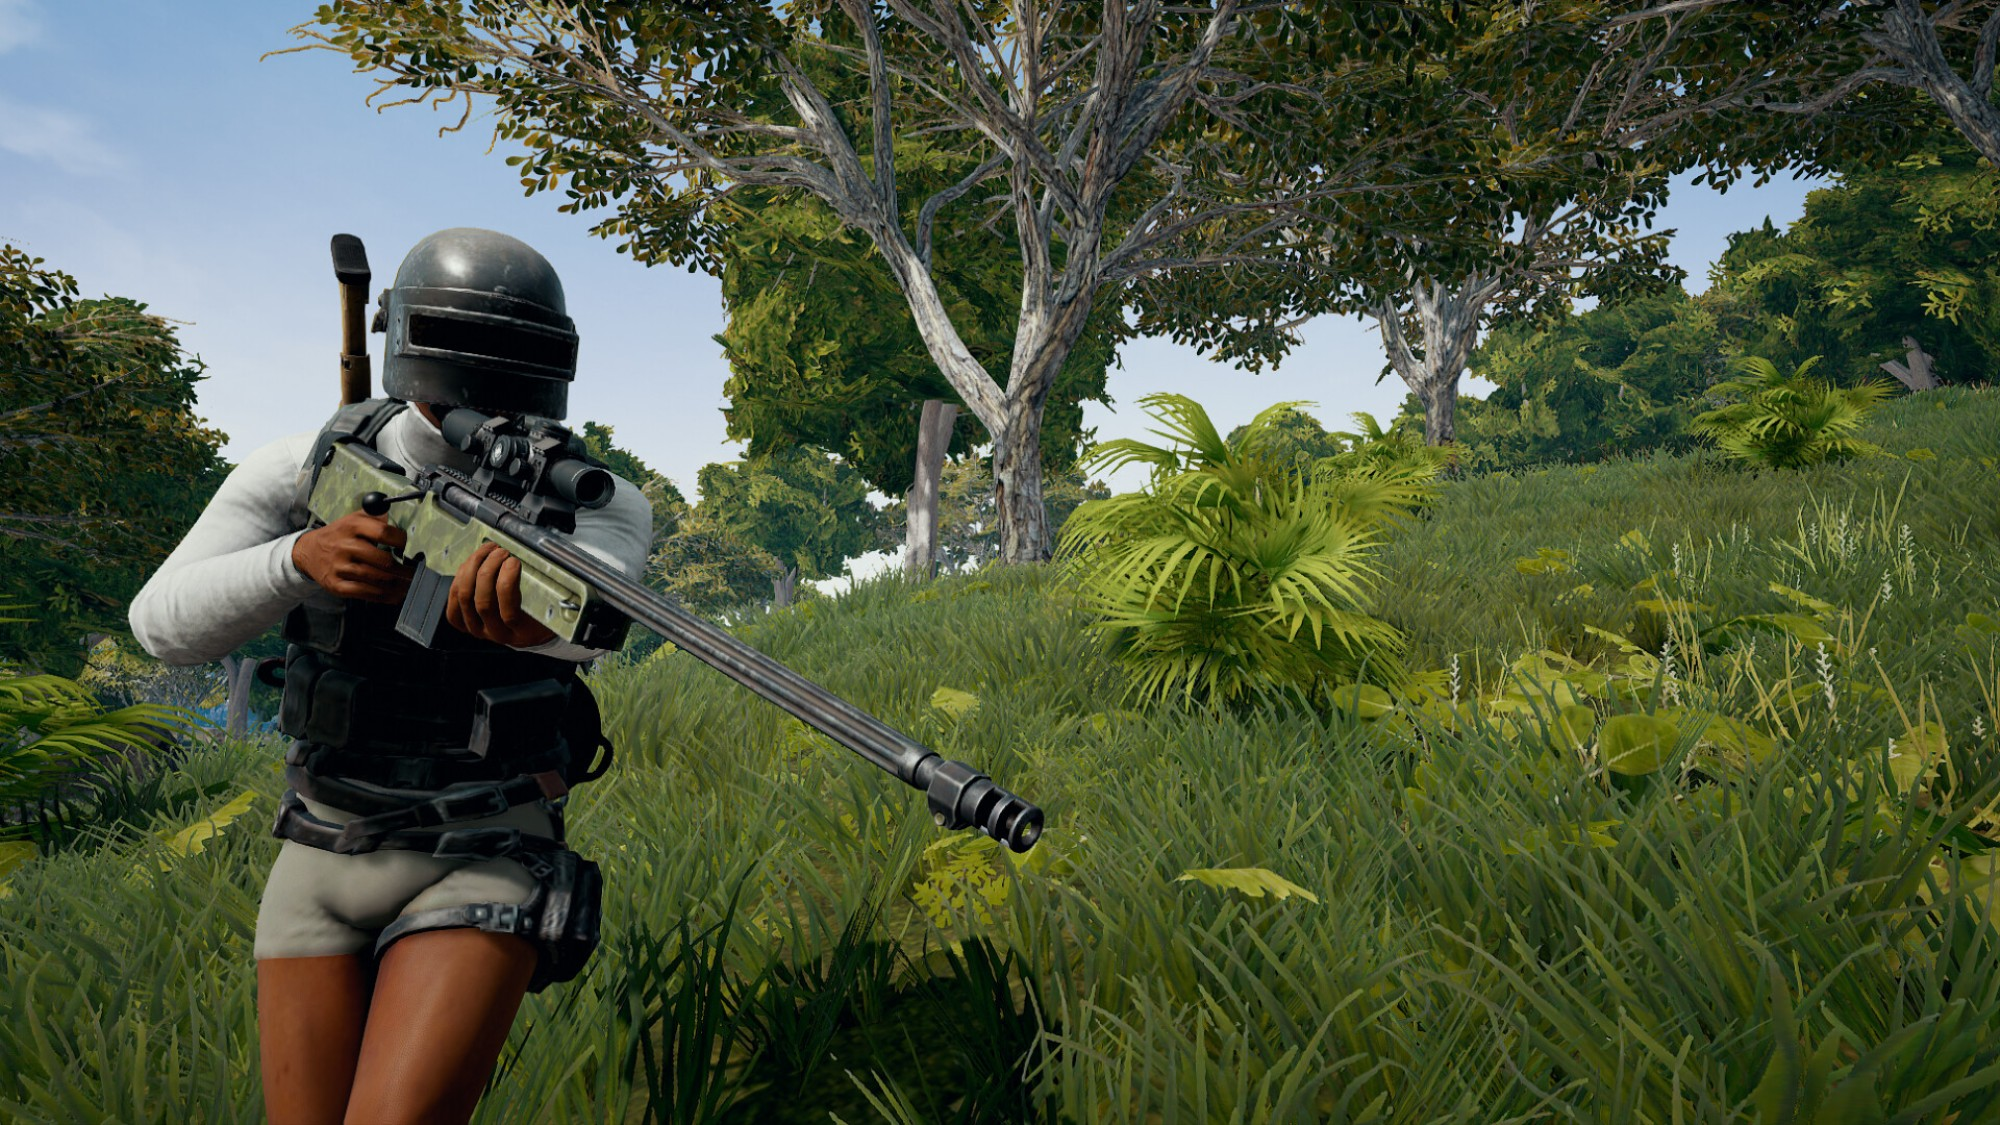 Pubg Will Now Impose A 10 Year Ban On Any Player Caught